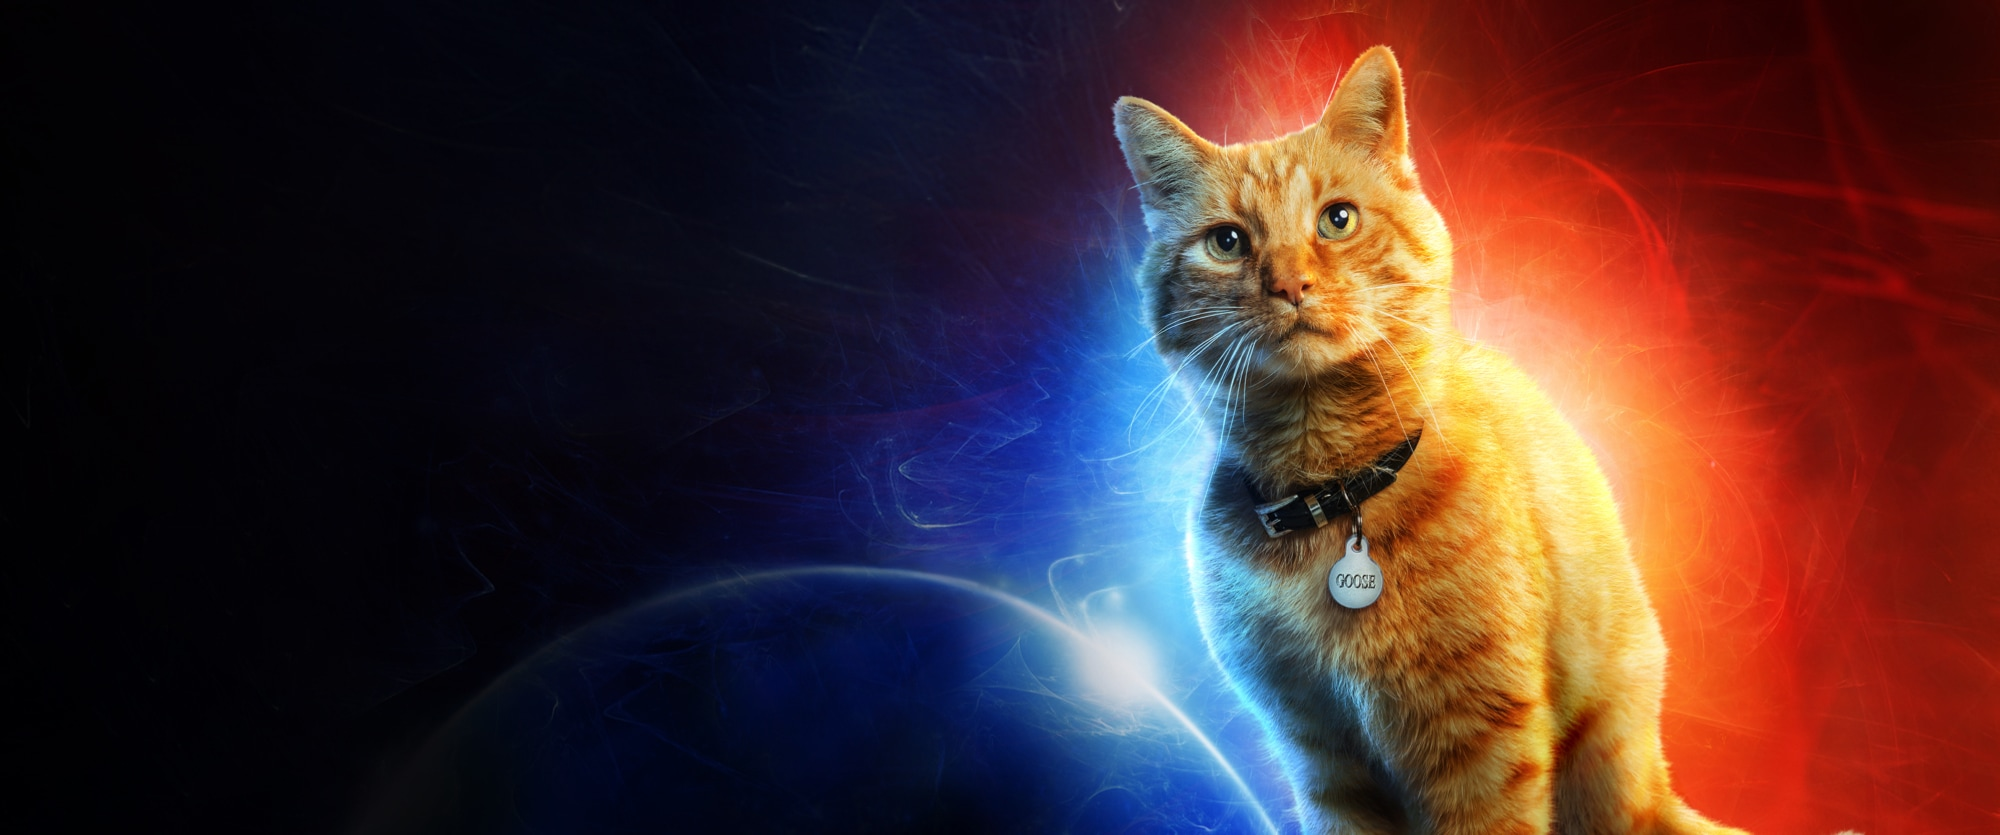 Captain Marvel | In Cinemas Now | Goose The Cat